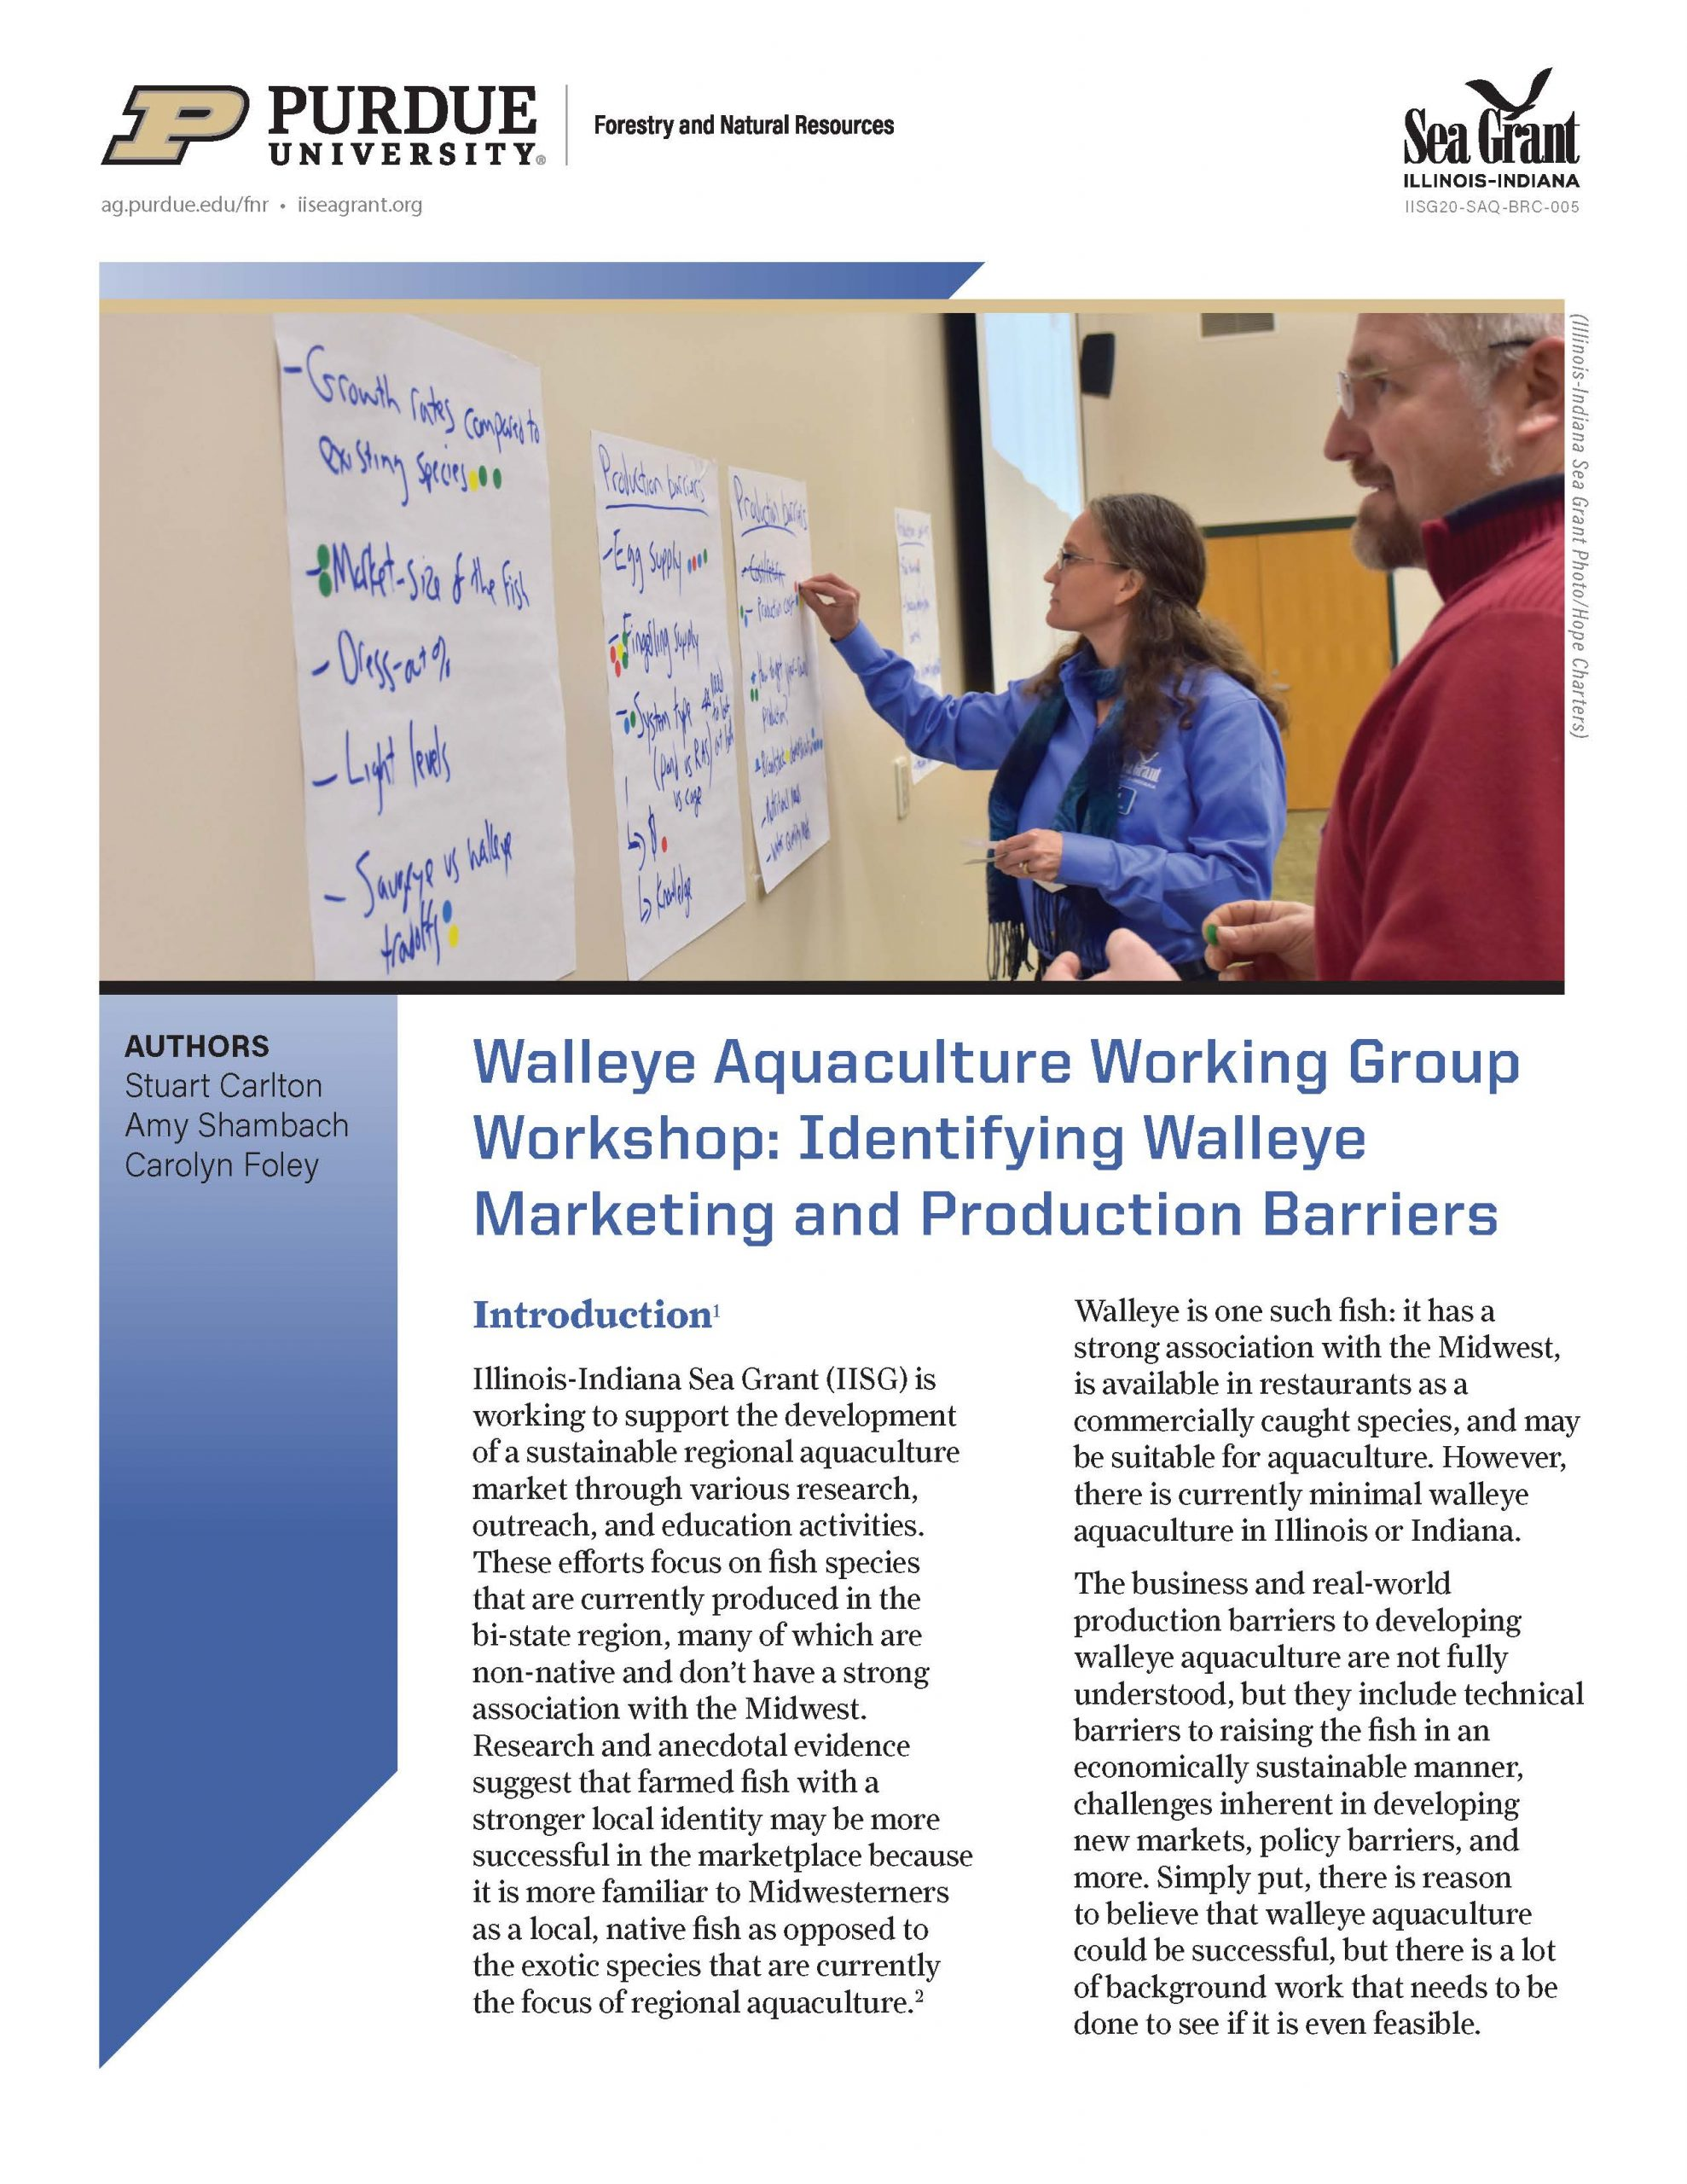 Walleye Aquaculture Working Group Workshop: Identifying Walleye Marketing and Production Barriers Thumbnail